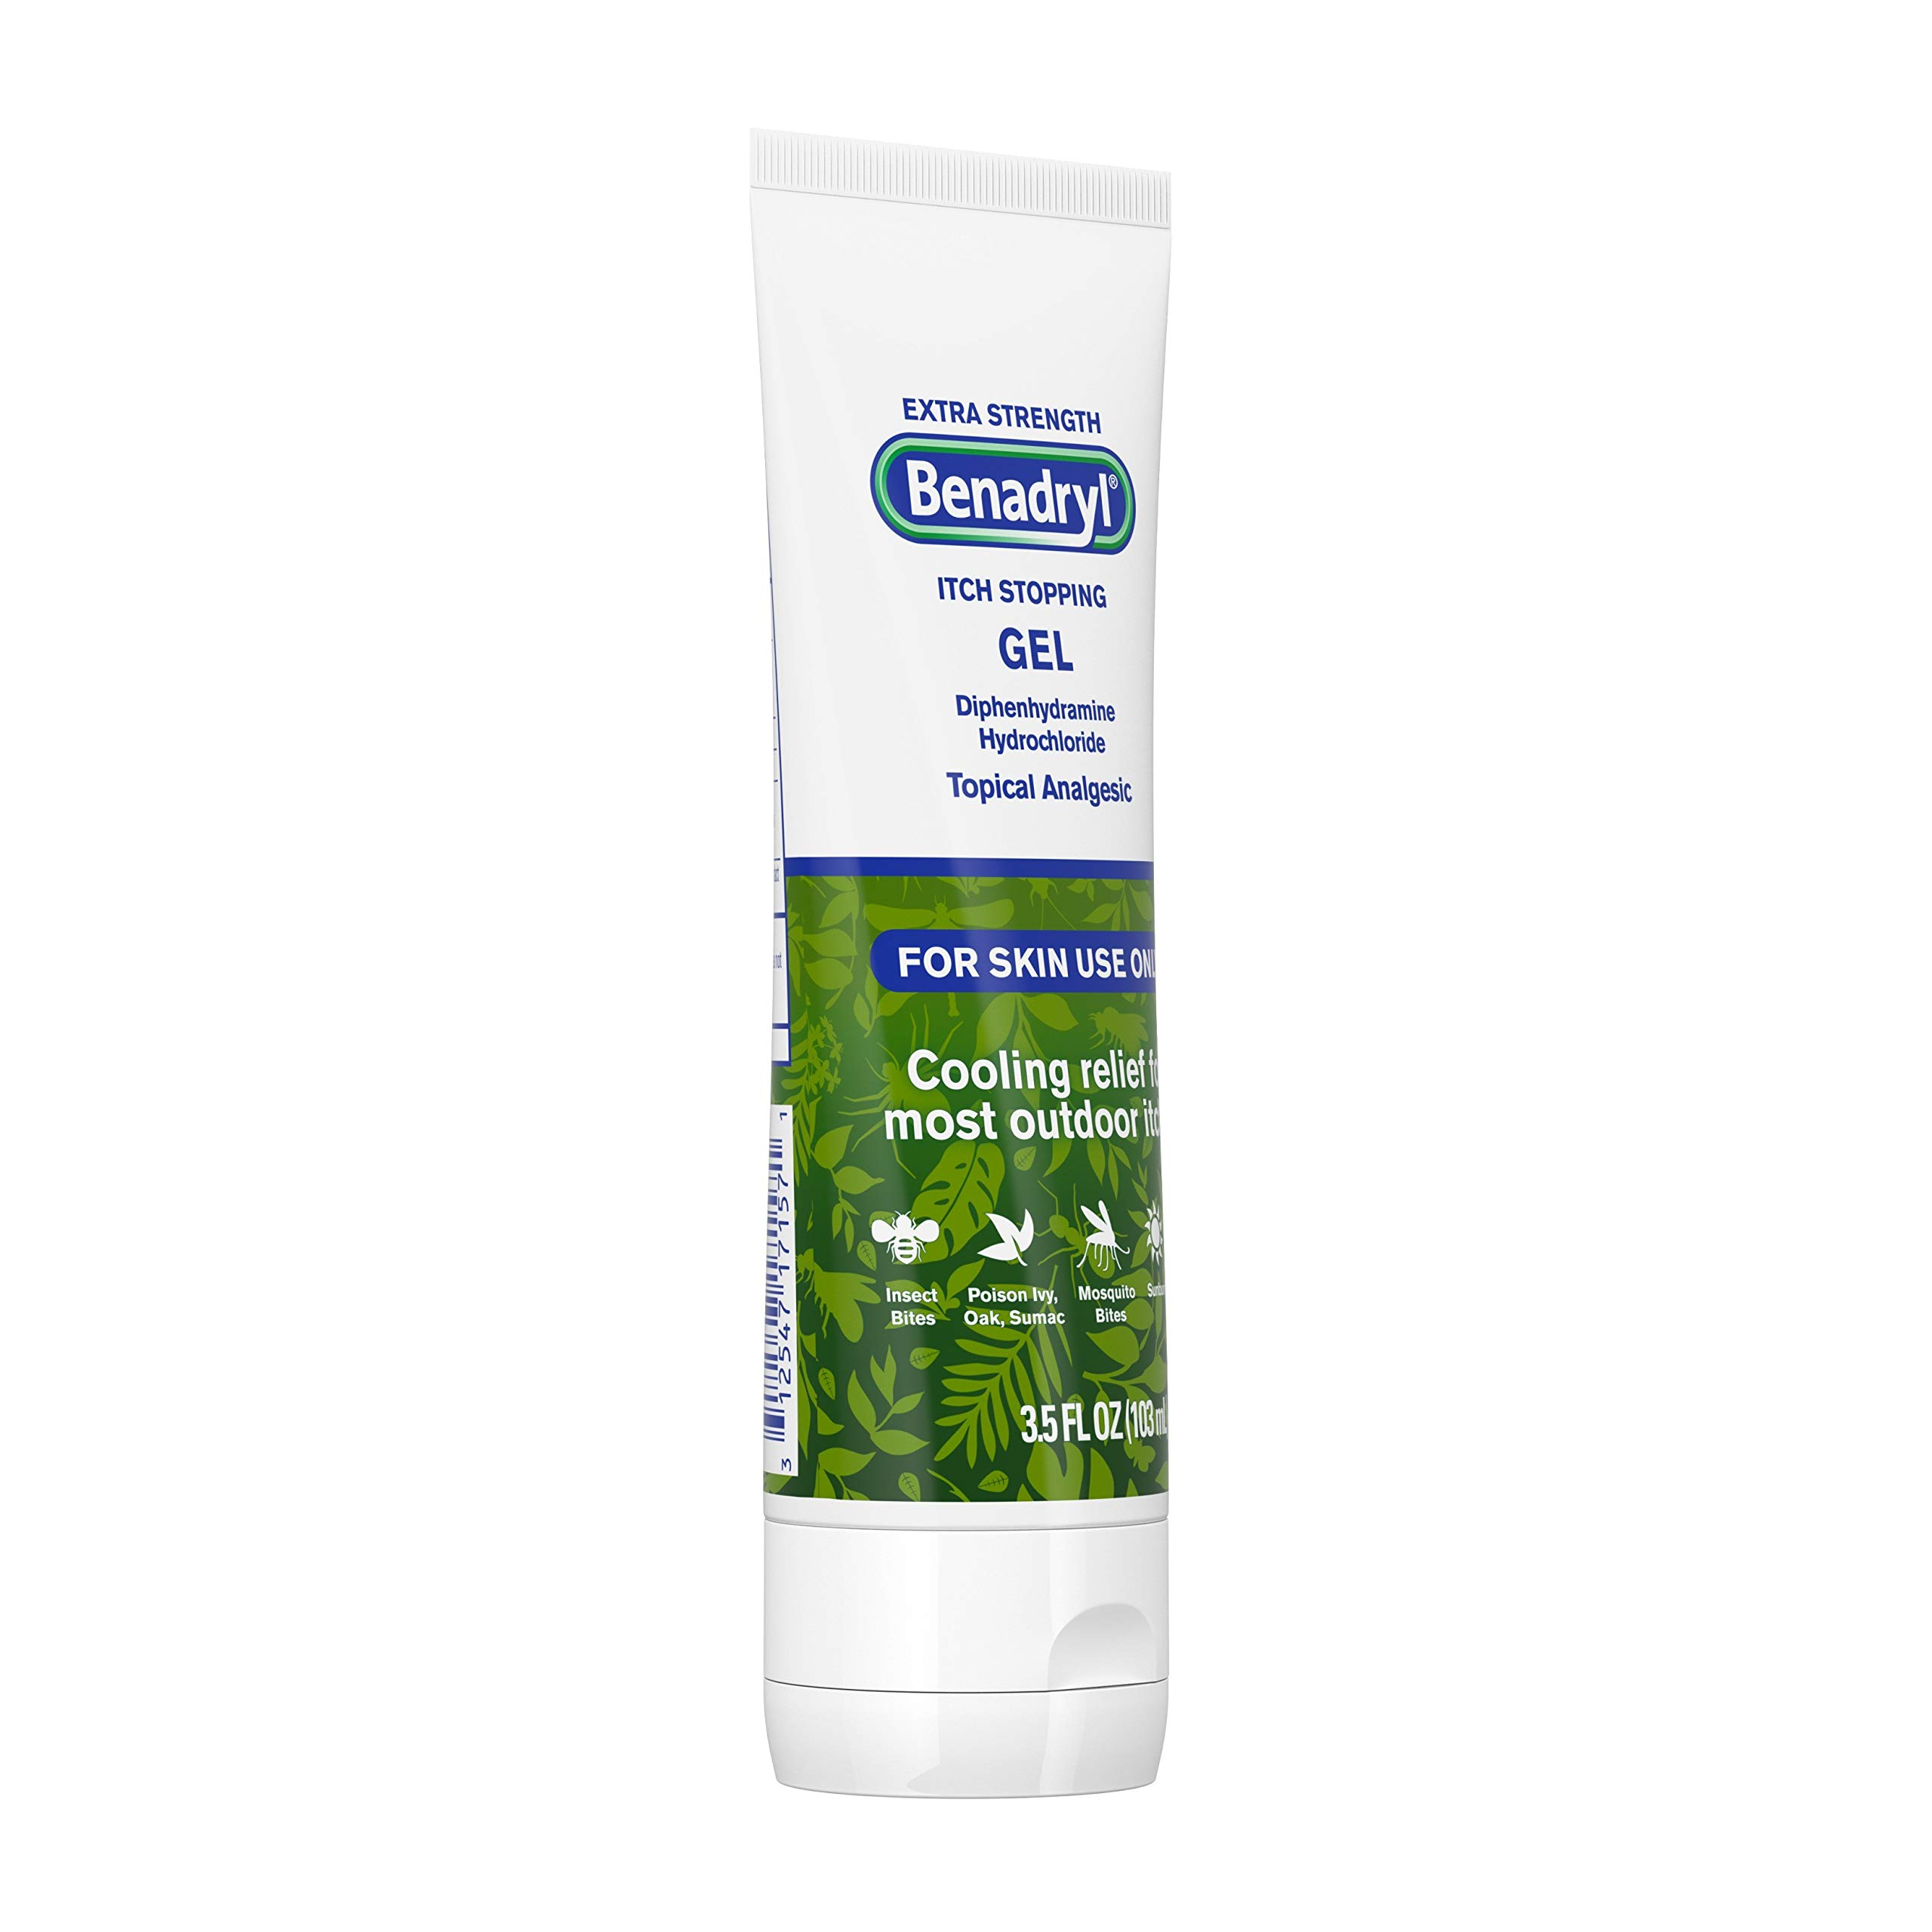 Benadryl Extra Strength Anti-Itch Gel, 2 Percentage Diphenhydramine HCI Topical Analgesic & Histamine Blocker for Relief of Outdoor Itches Associated with Poison Ivy, Insect Bites & More, 3.5 fl. oz